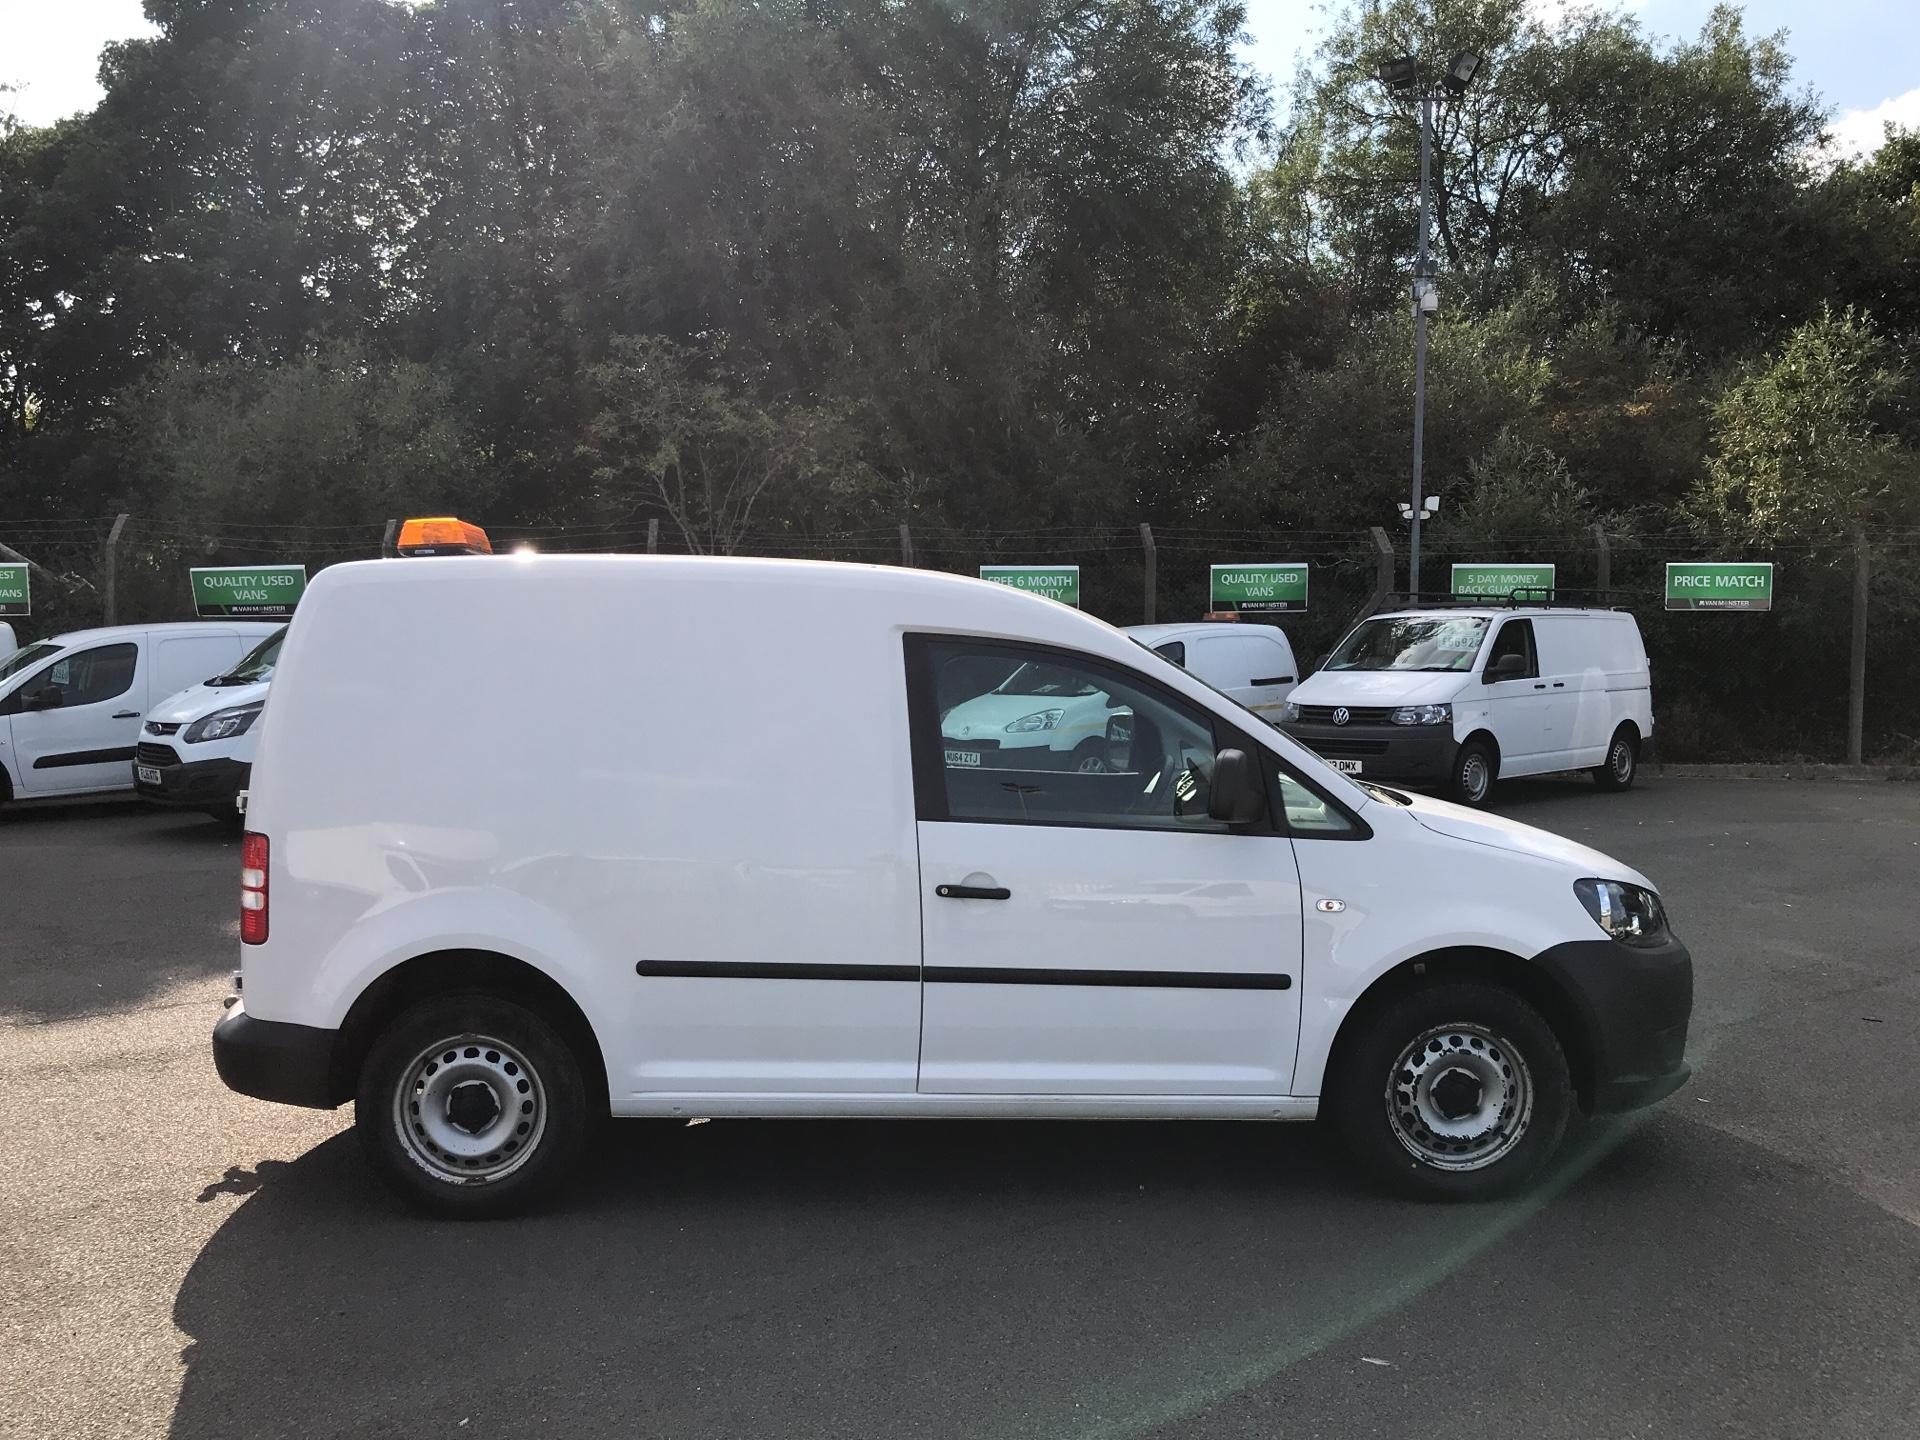 2015 Volkswagen Caddy  1.6 102PS STARTLINE EURO 5  *VALUE RANGE VEHICLE - CONDITION REFLECTED IN PRICE*  (GM15VLN) Image 2